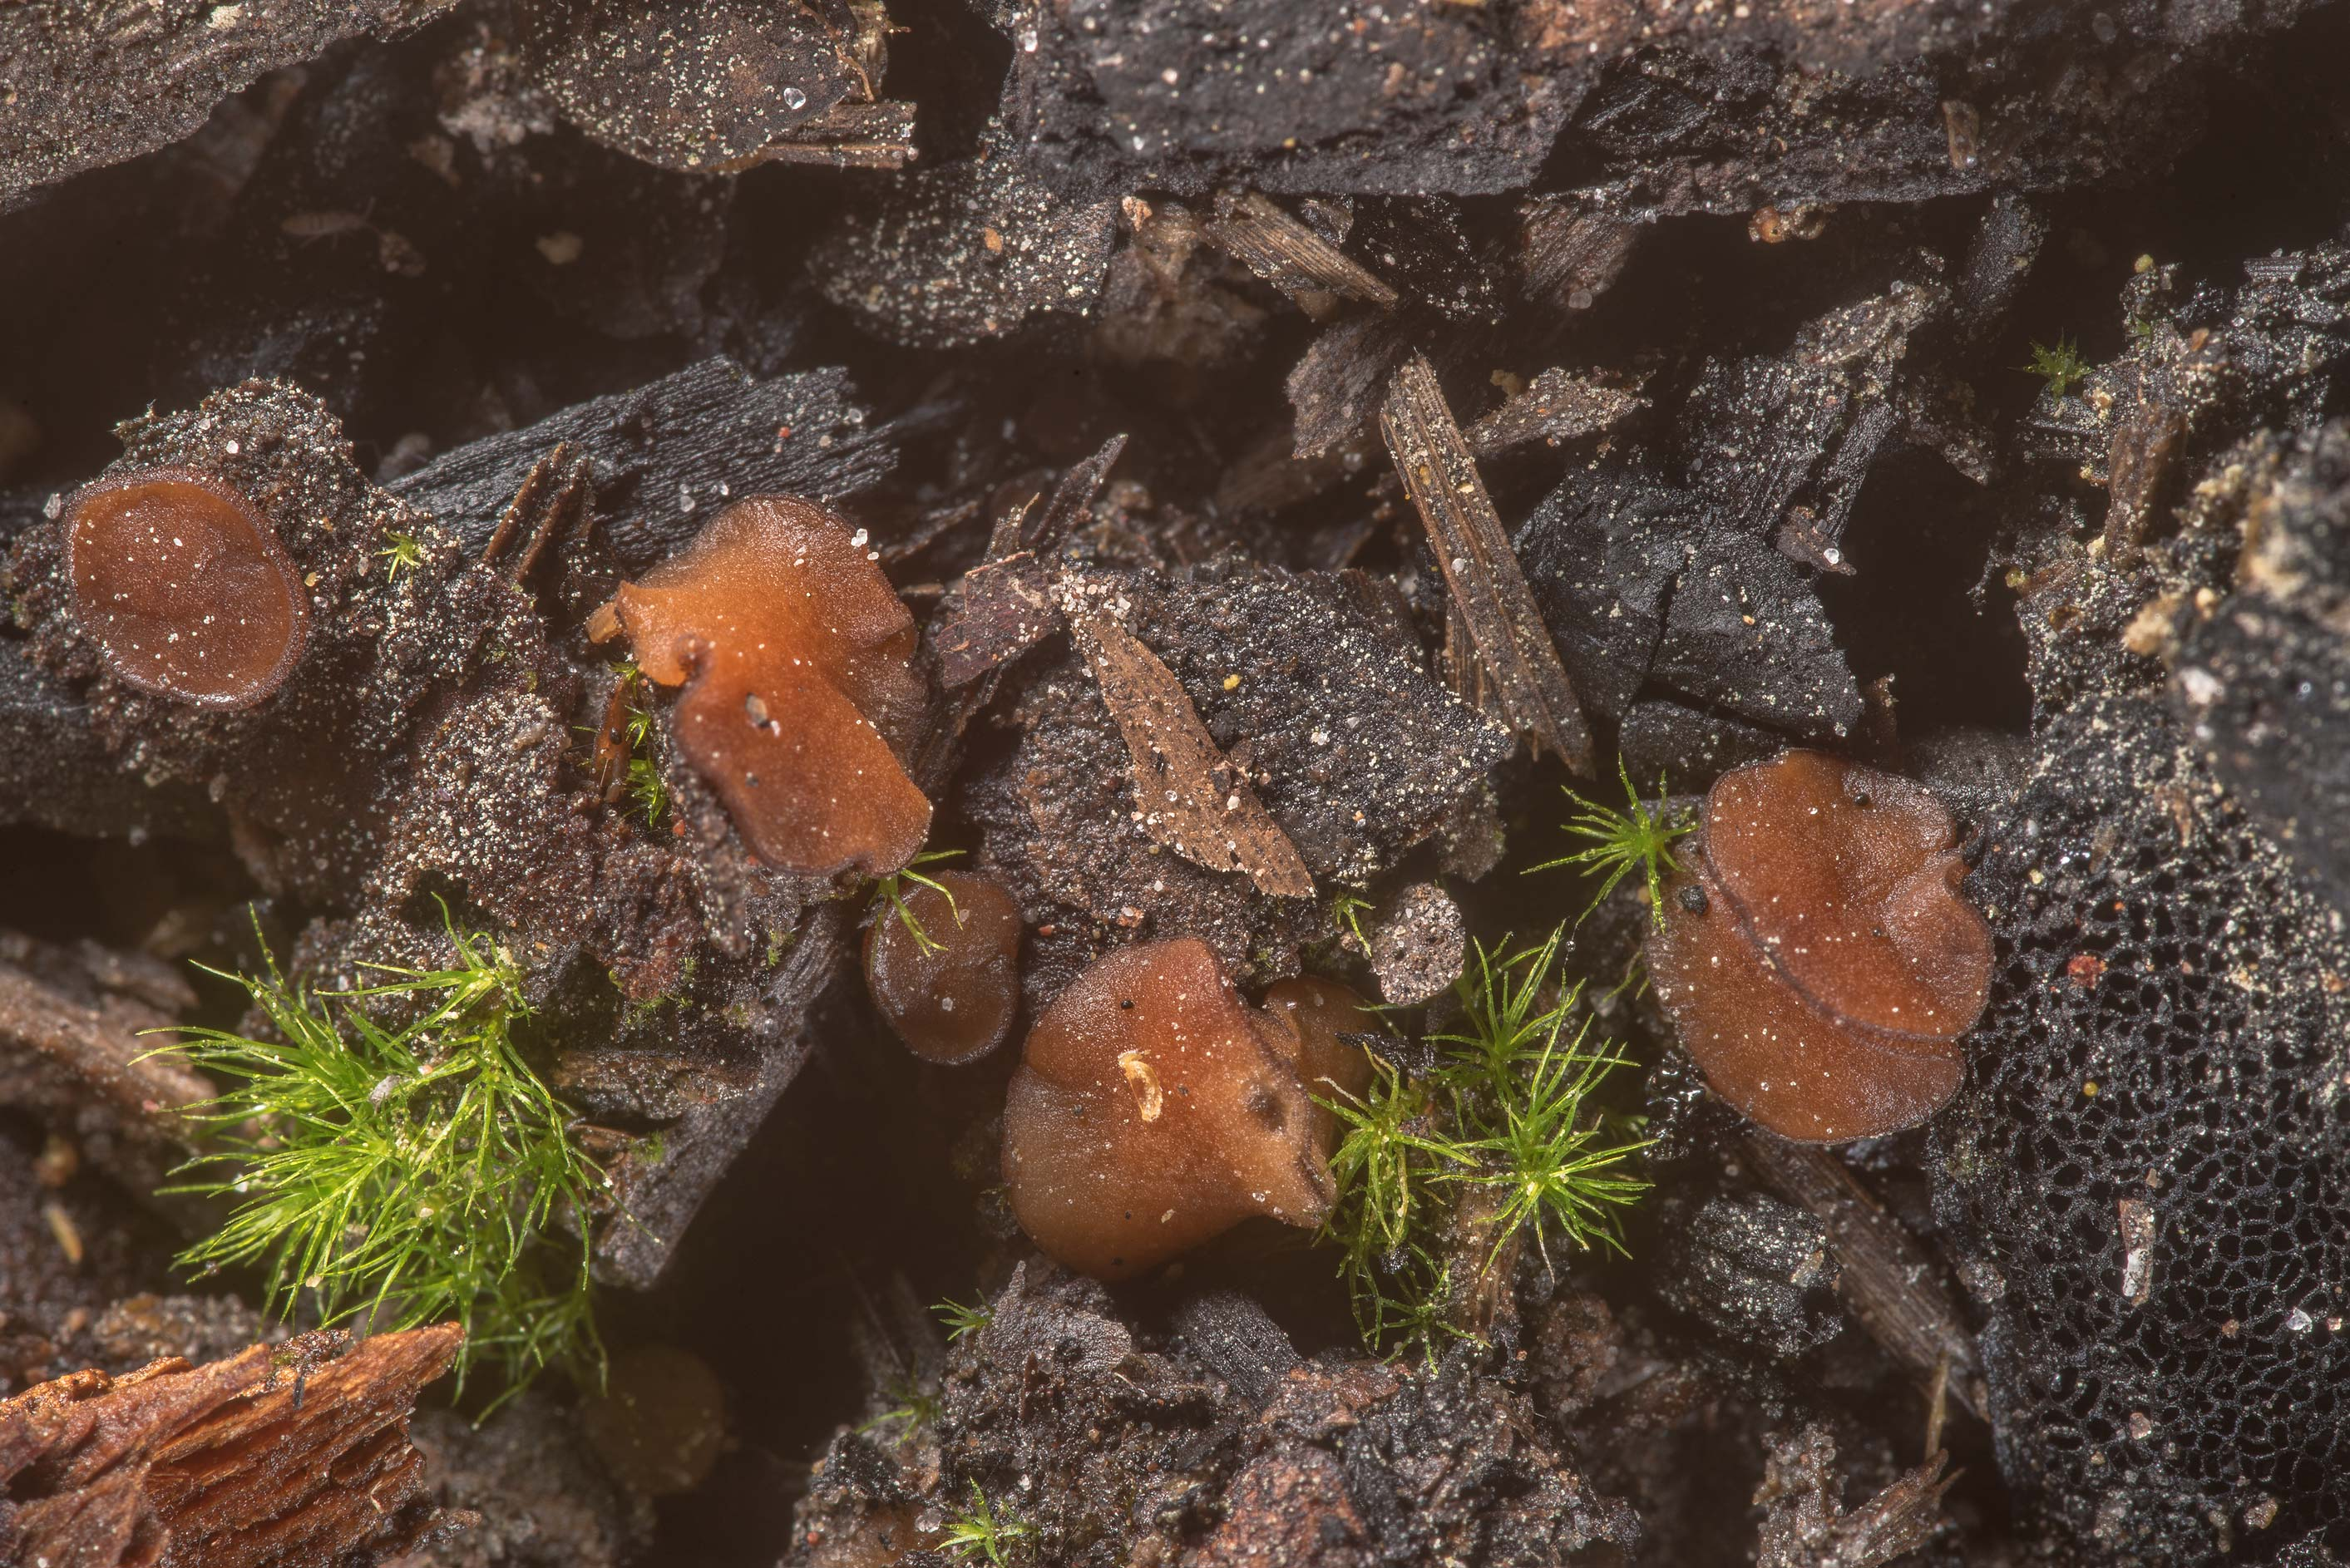 Some brown cup Ascomycete fungus on a site of old...in Sam Houston National Forest. Texas